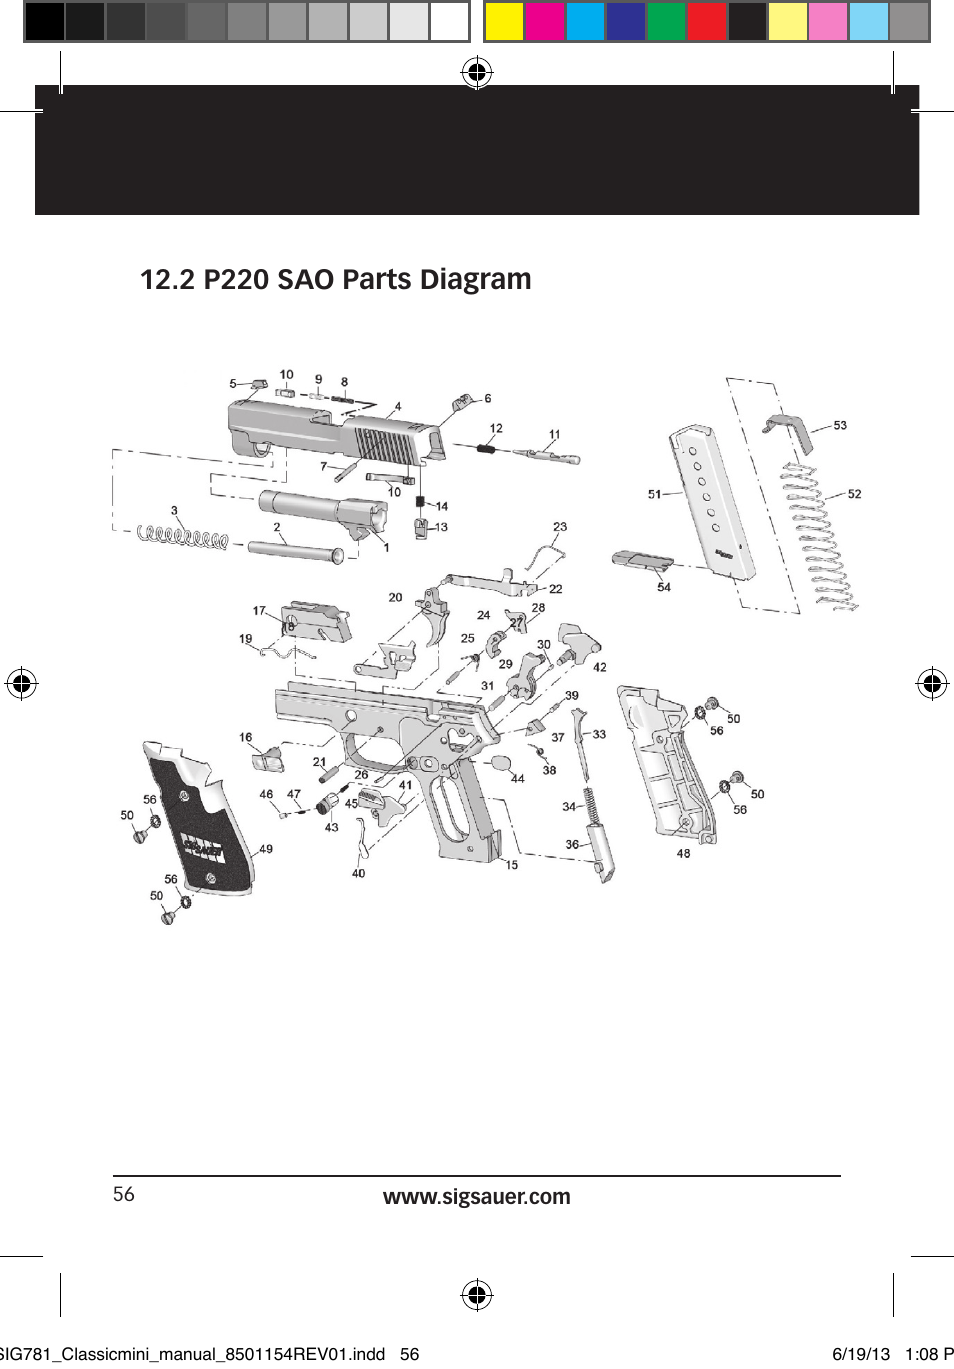 2 P220 Sao Parts Diagram